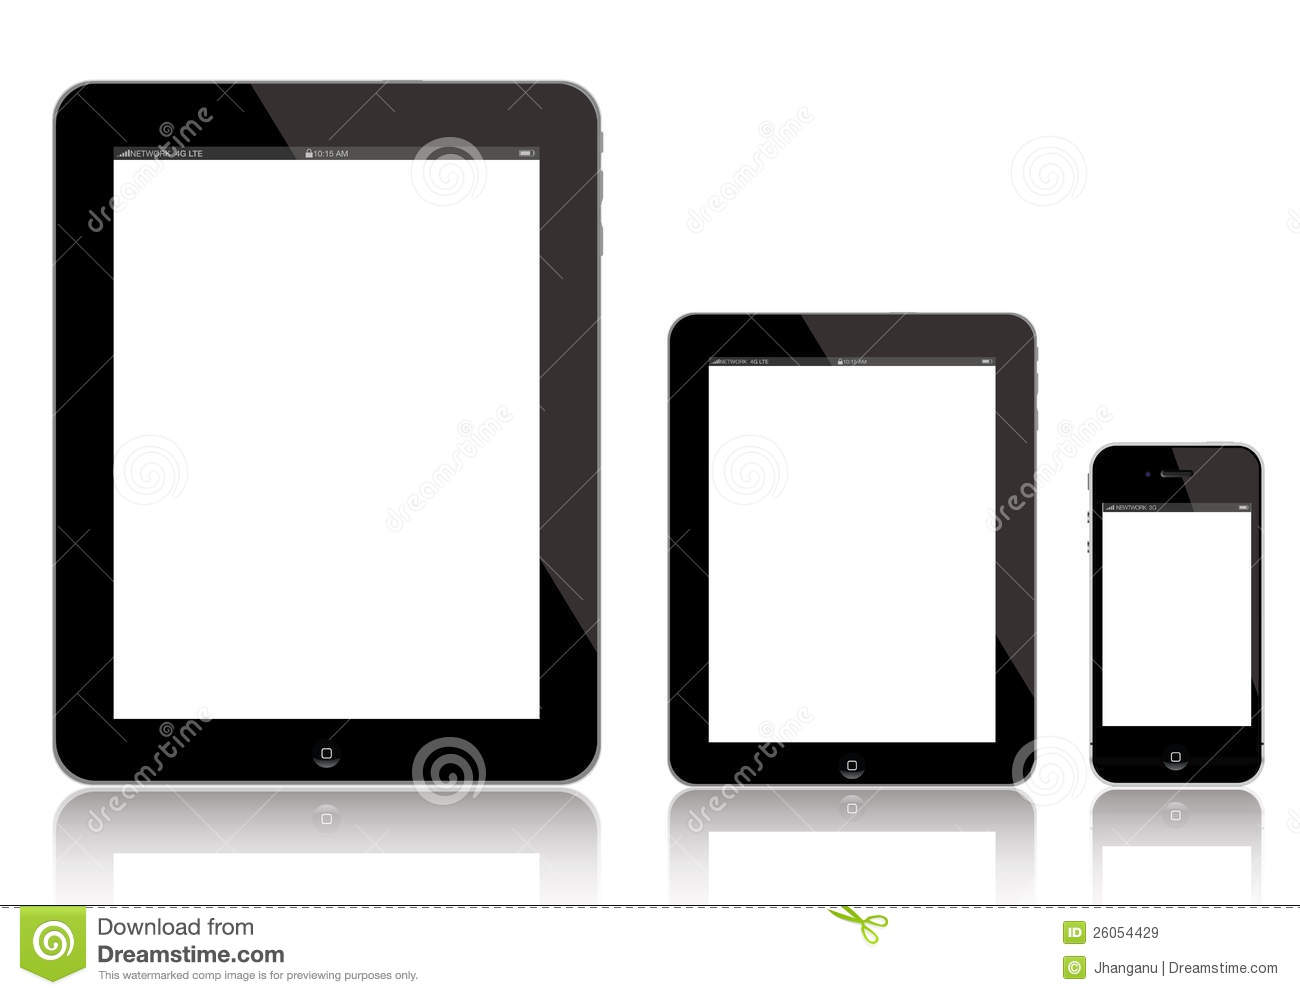 IPad, iPad Mini en iPhone